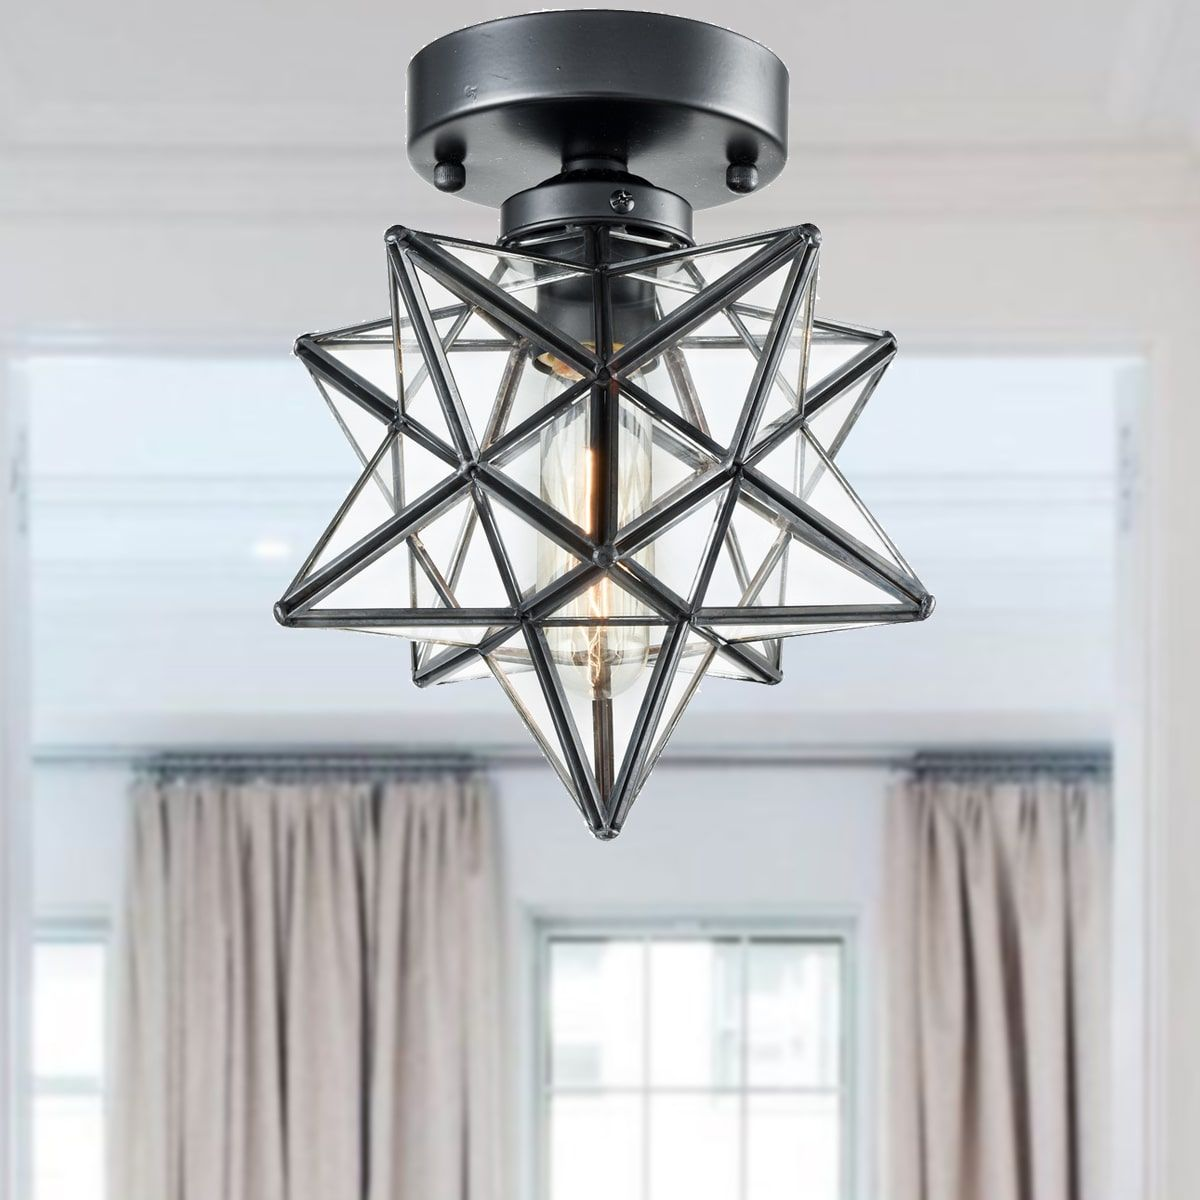 Industrial Moravian Star Ceiling Light With Clear Glass 8 Inches Ceiling Lights Star Lights On Ceiling Glass Light Fixture